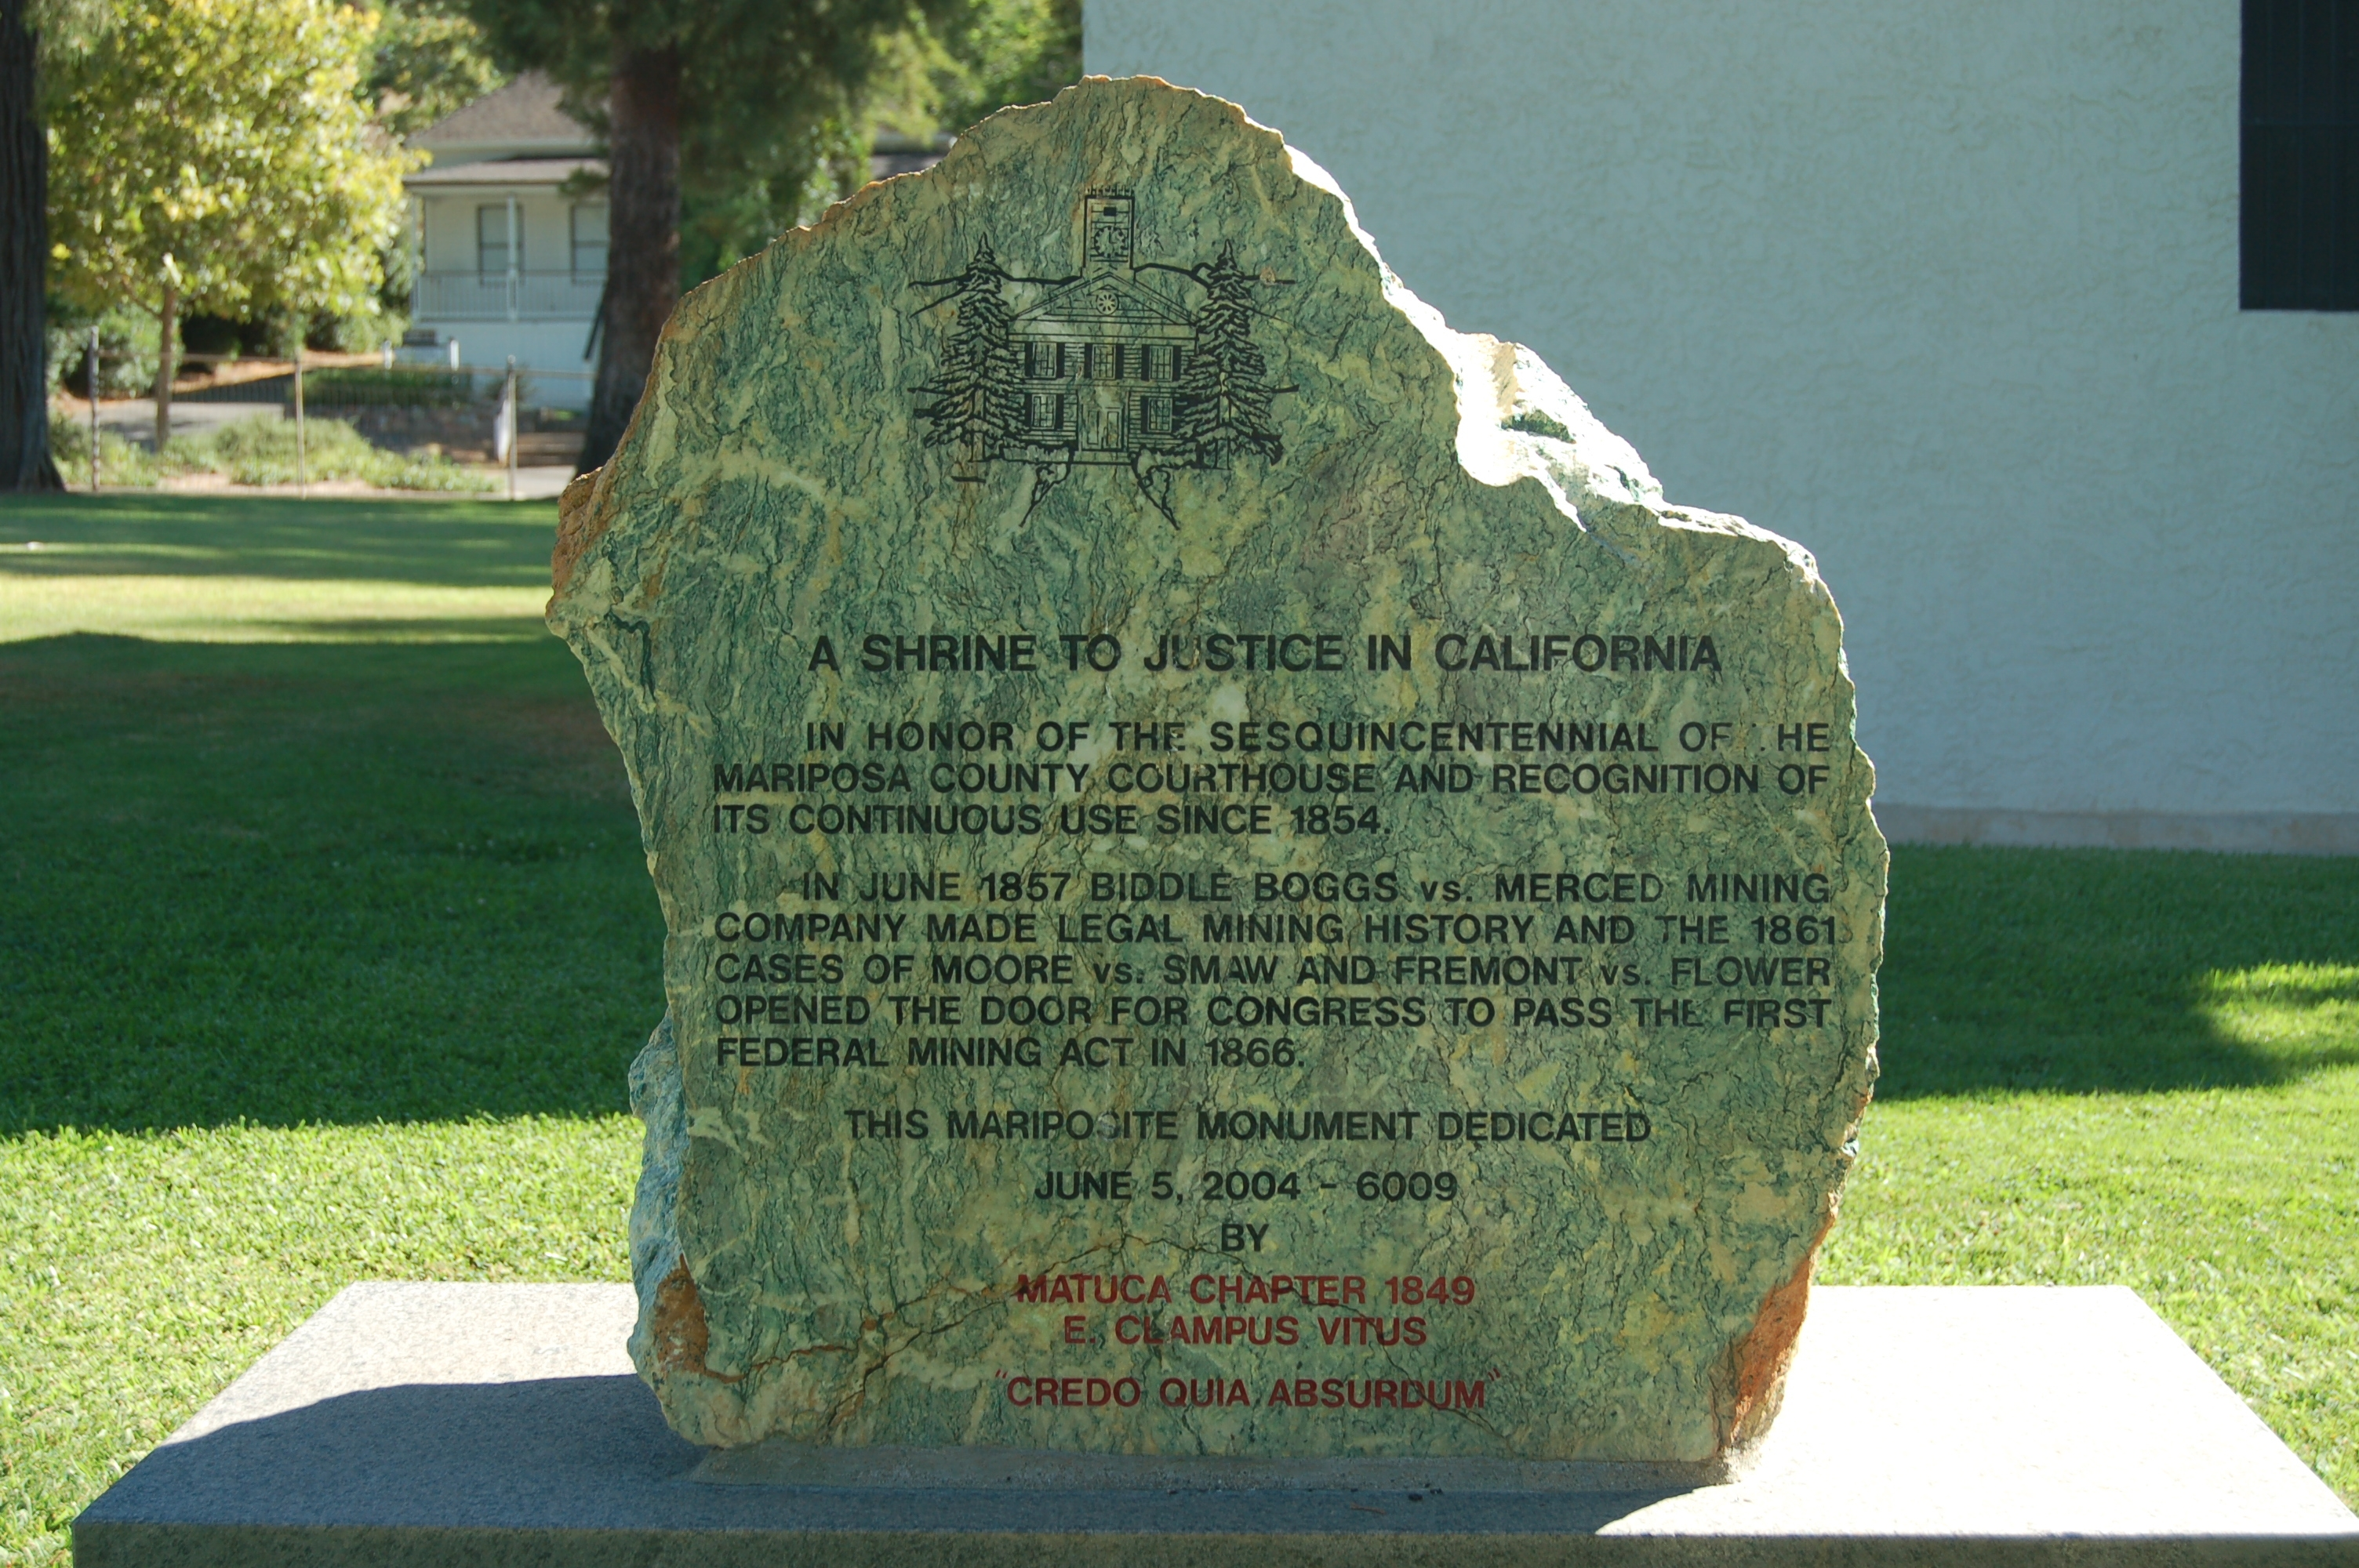 A Shrine to Justice in California Marker